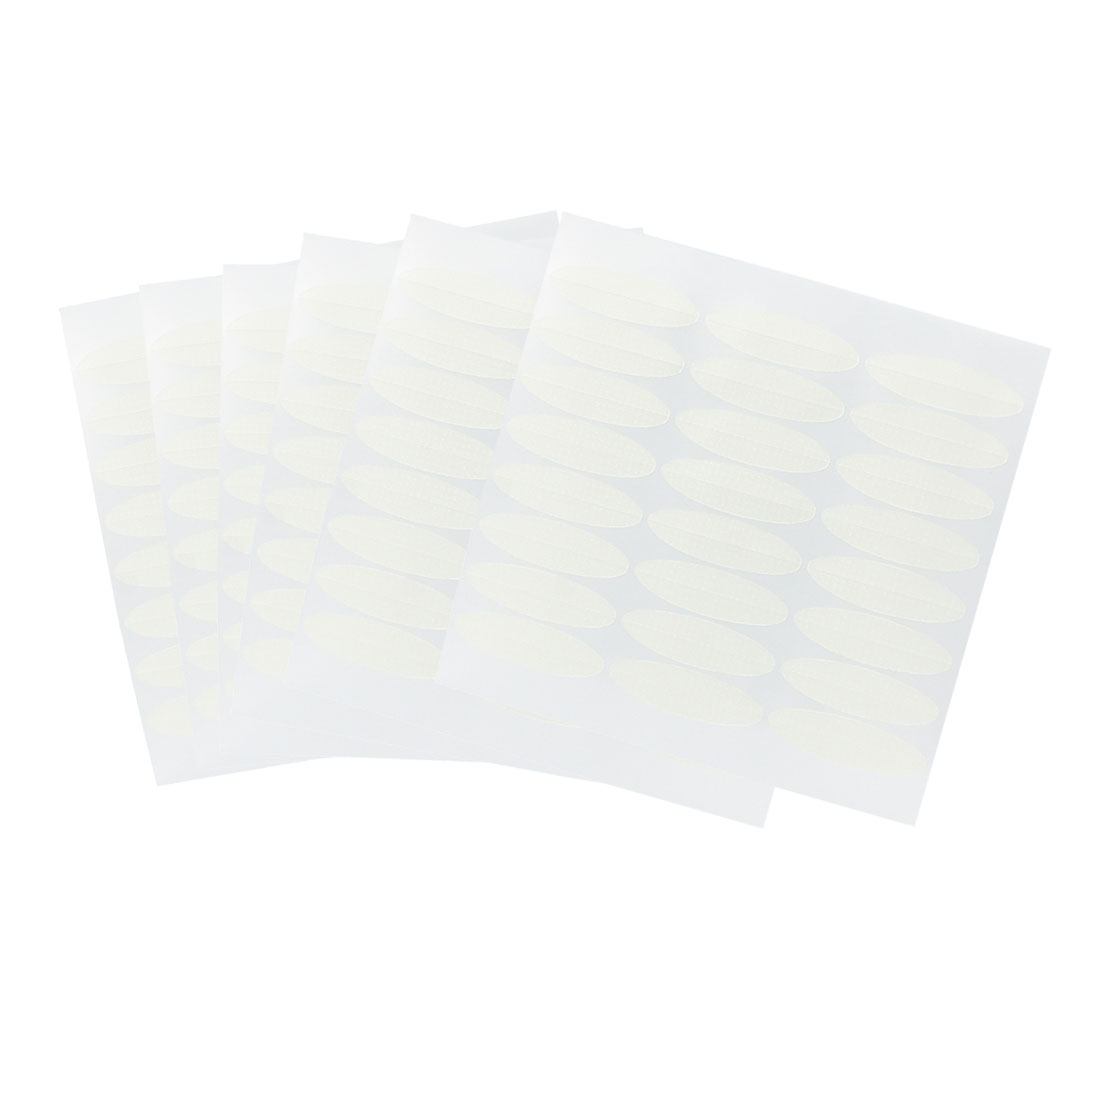 Women Beauty Tool Wide Double Eyelid Maker Stickers Pads 144 Pairs